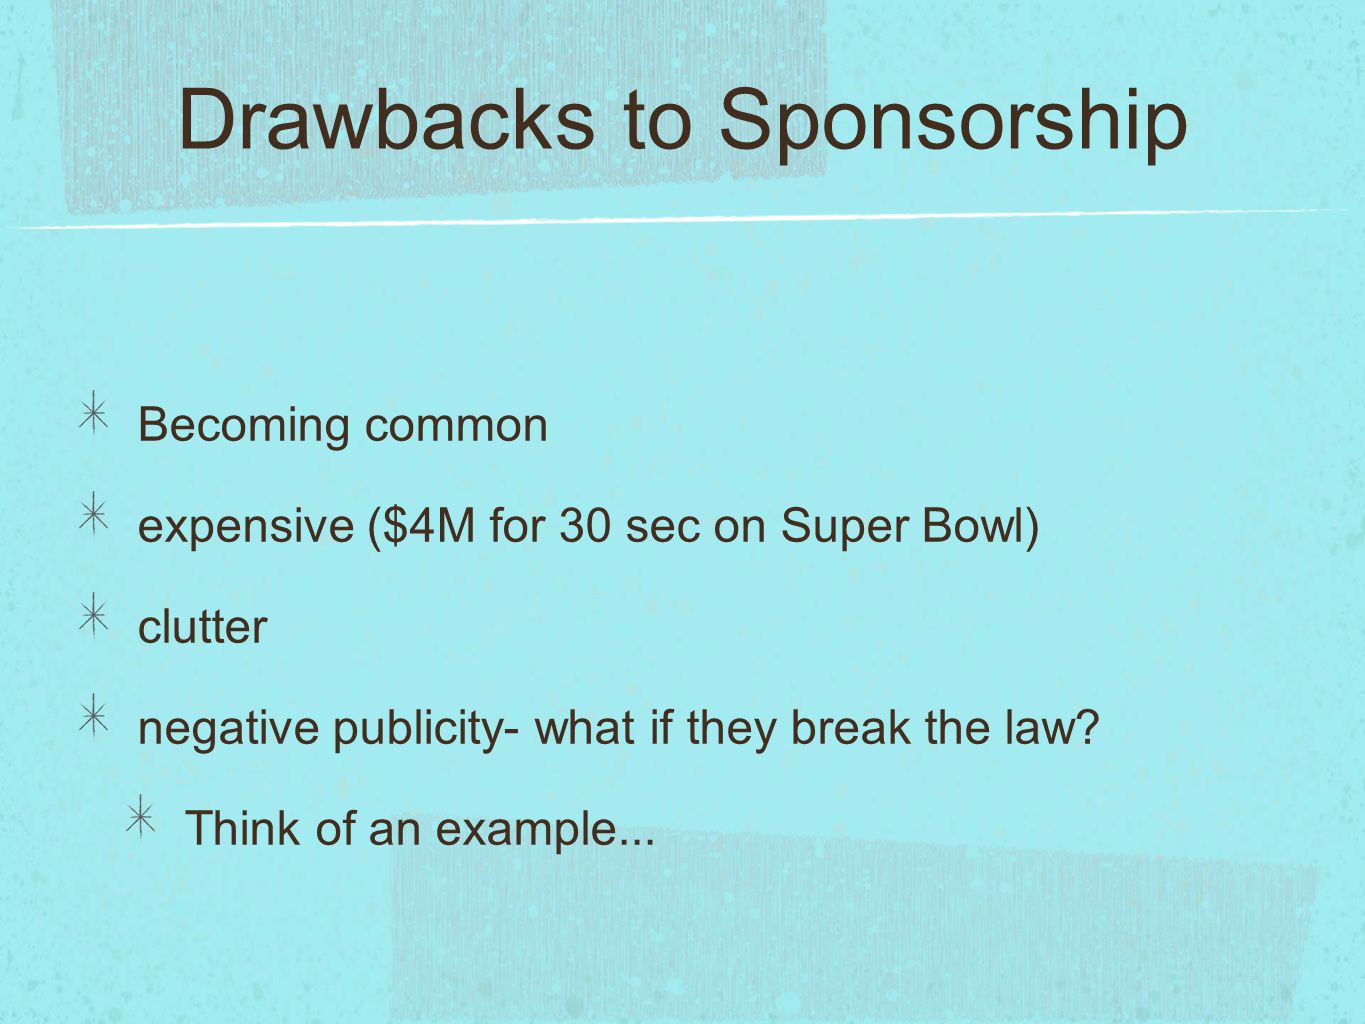 Drawbacks to Sponsorship Becoming common expensive ($4M for 30 sec on Super Bowl) clutter negative publicity- what if they break the law? Think of an